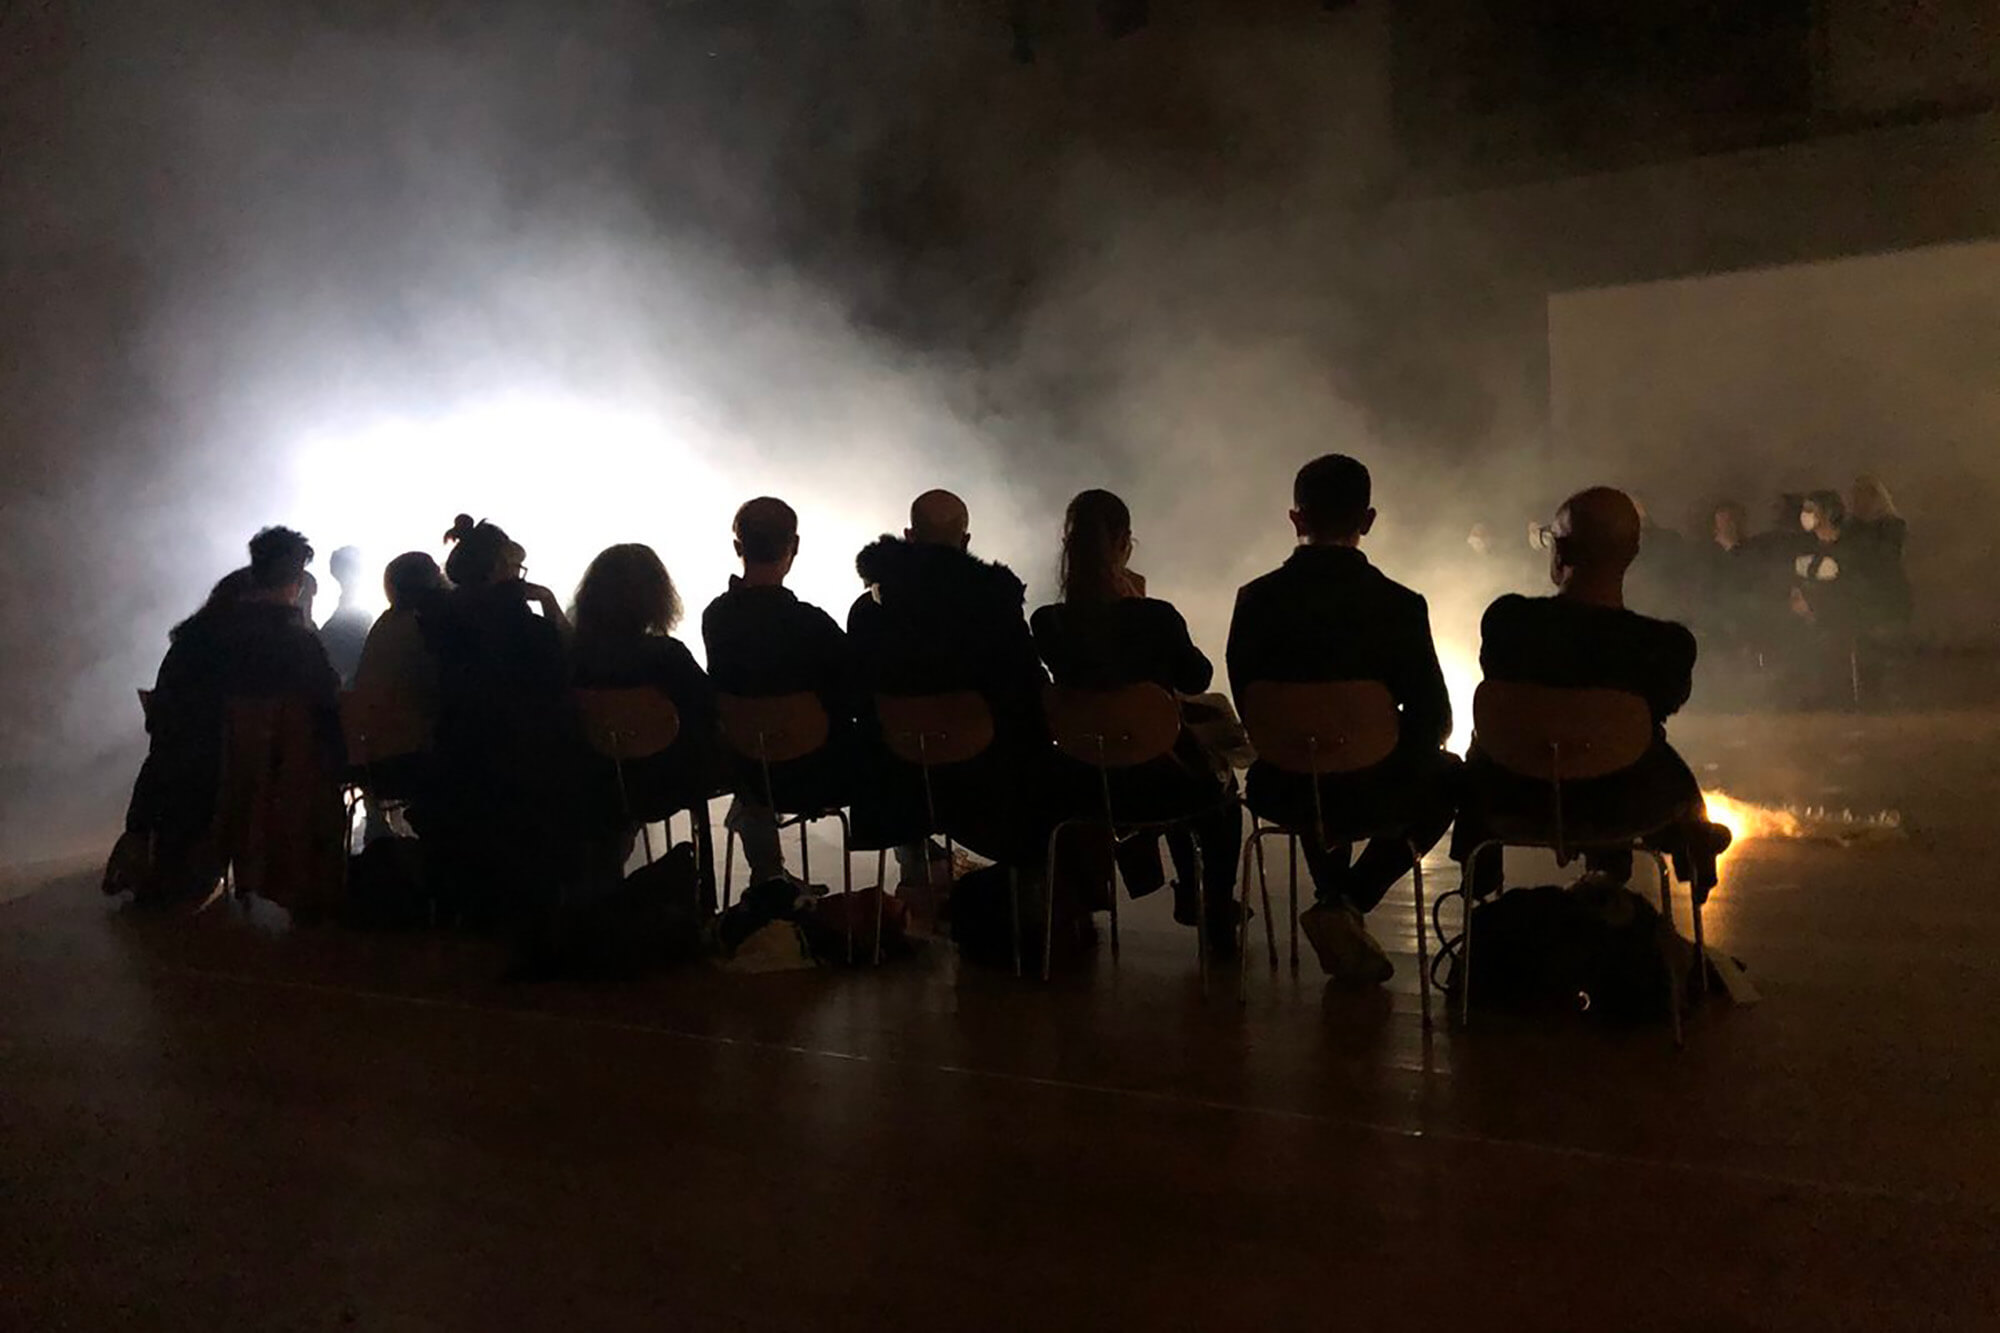 silhouette of the back of a row of audience members sitting on chairs watching a performance involving light and smoke